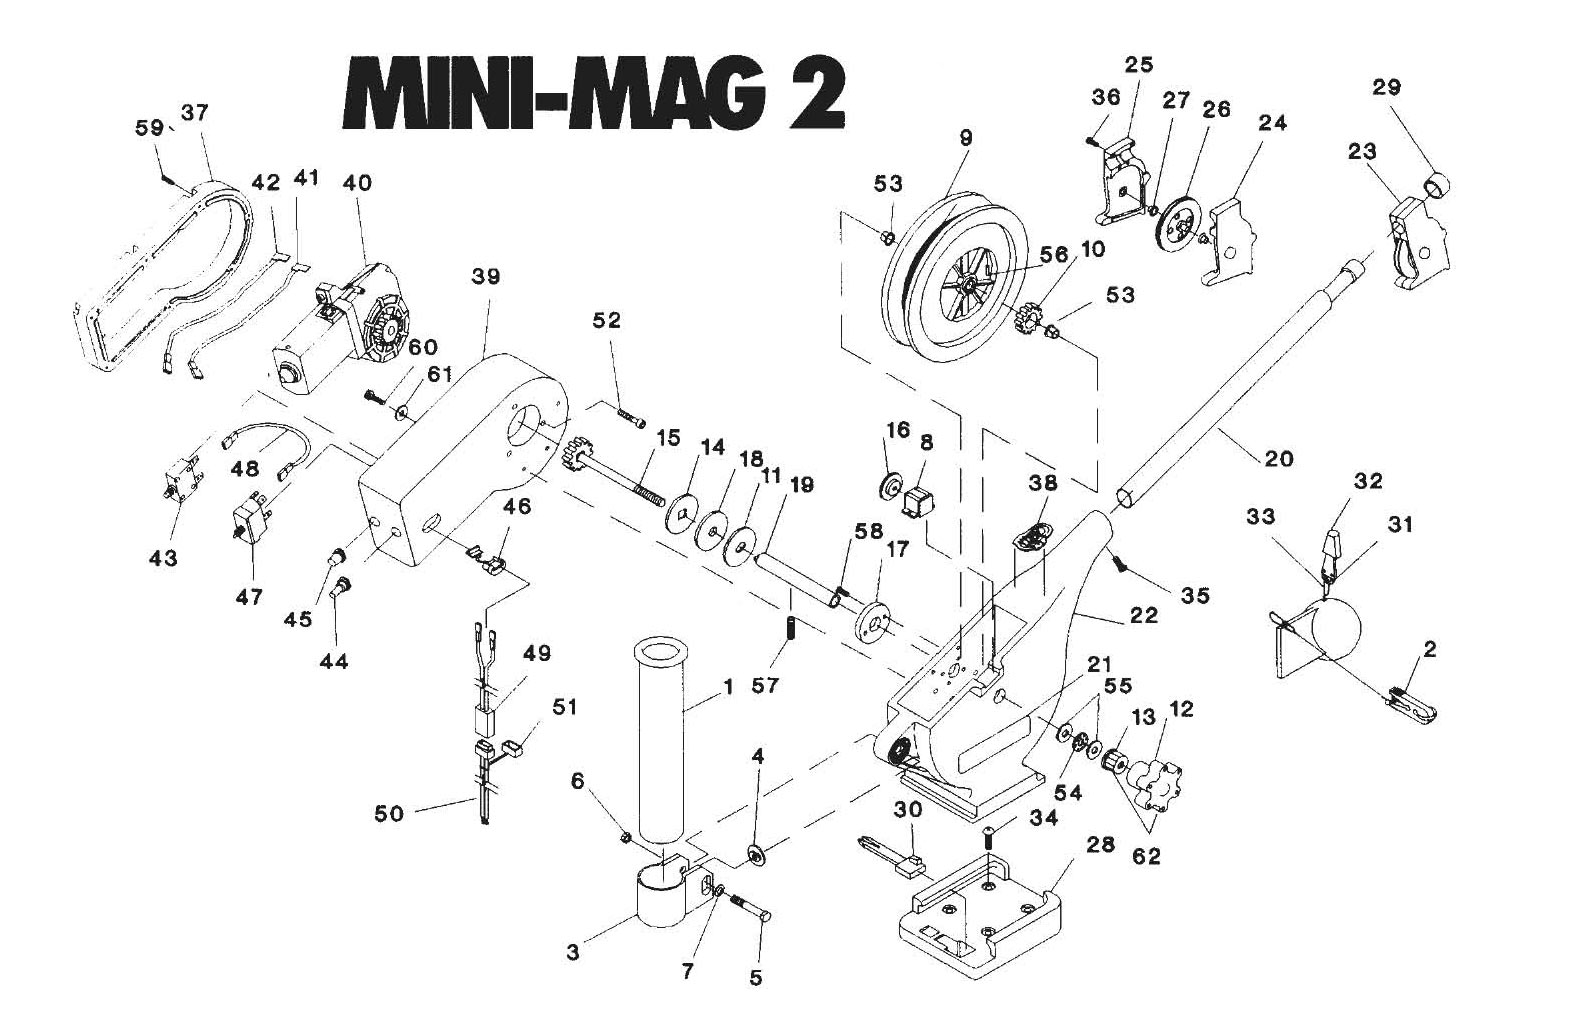 Order Cannon Mini-Mag 2 electric downrigger parts from